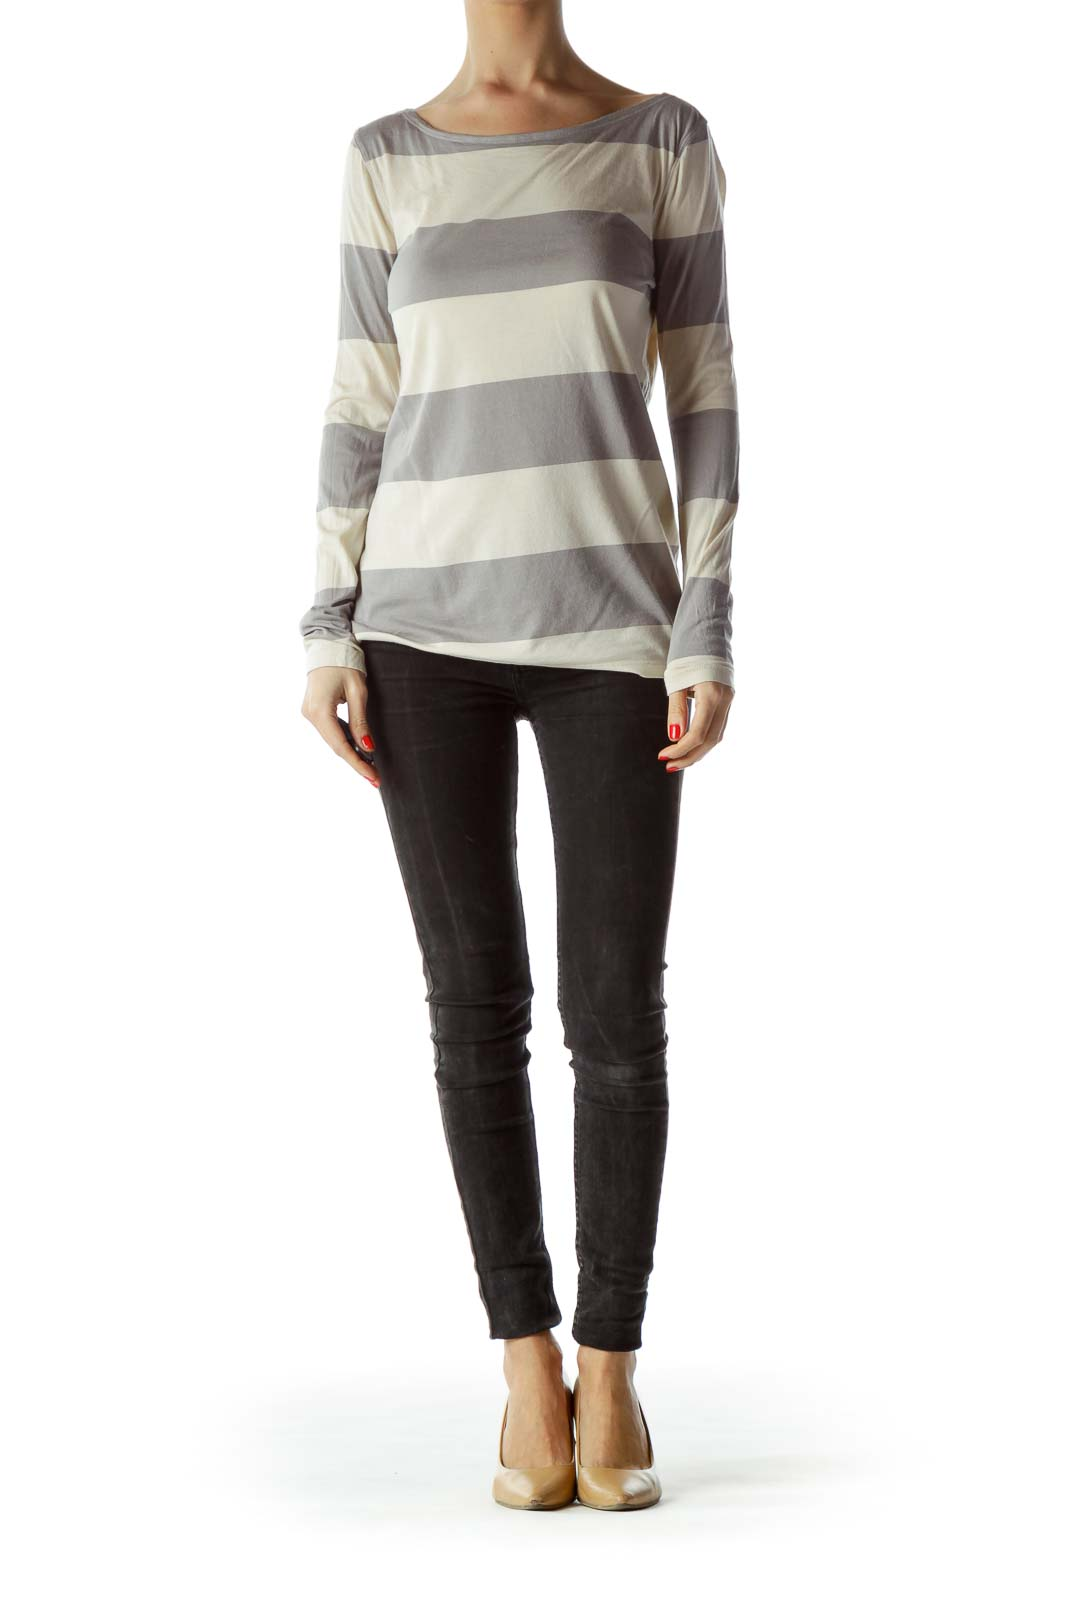 Gray Cream Striped Light Thin Long Sleeve Top